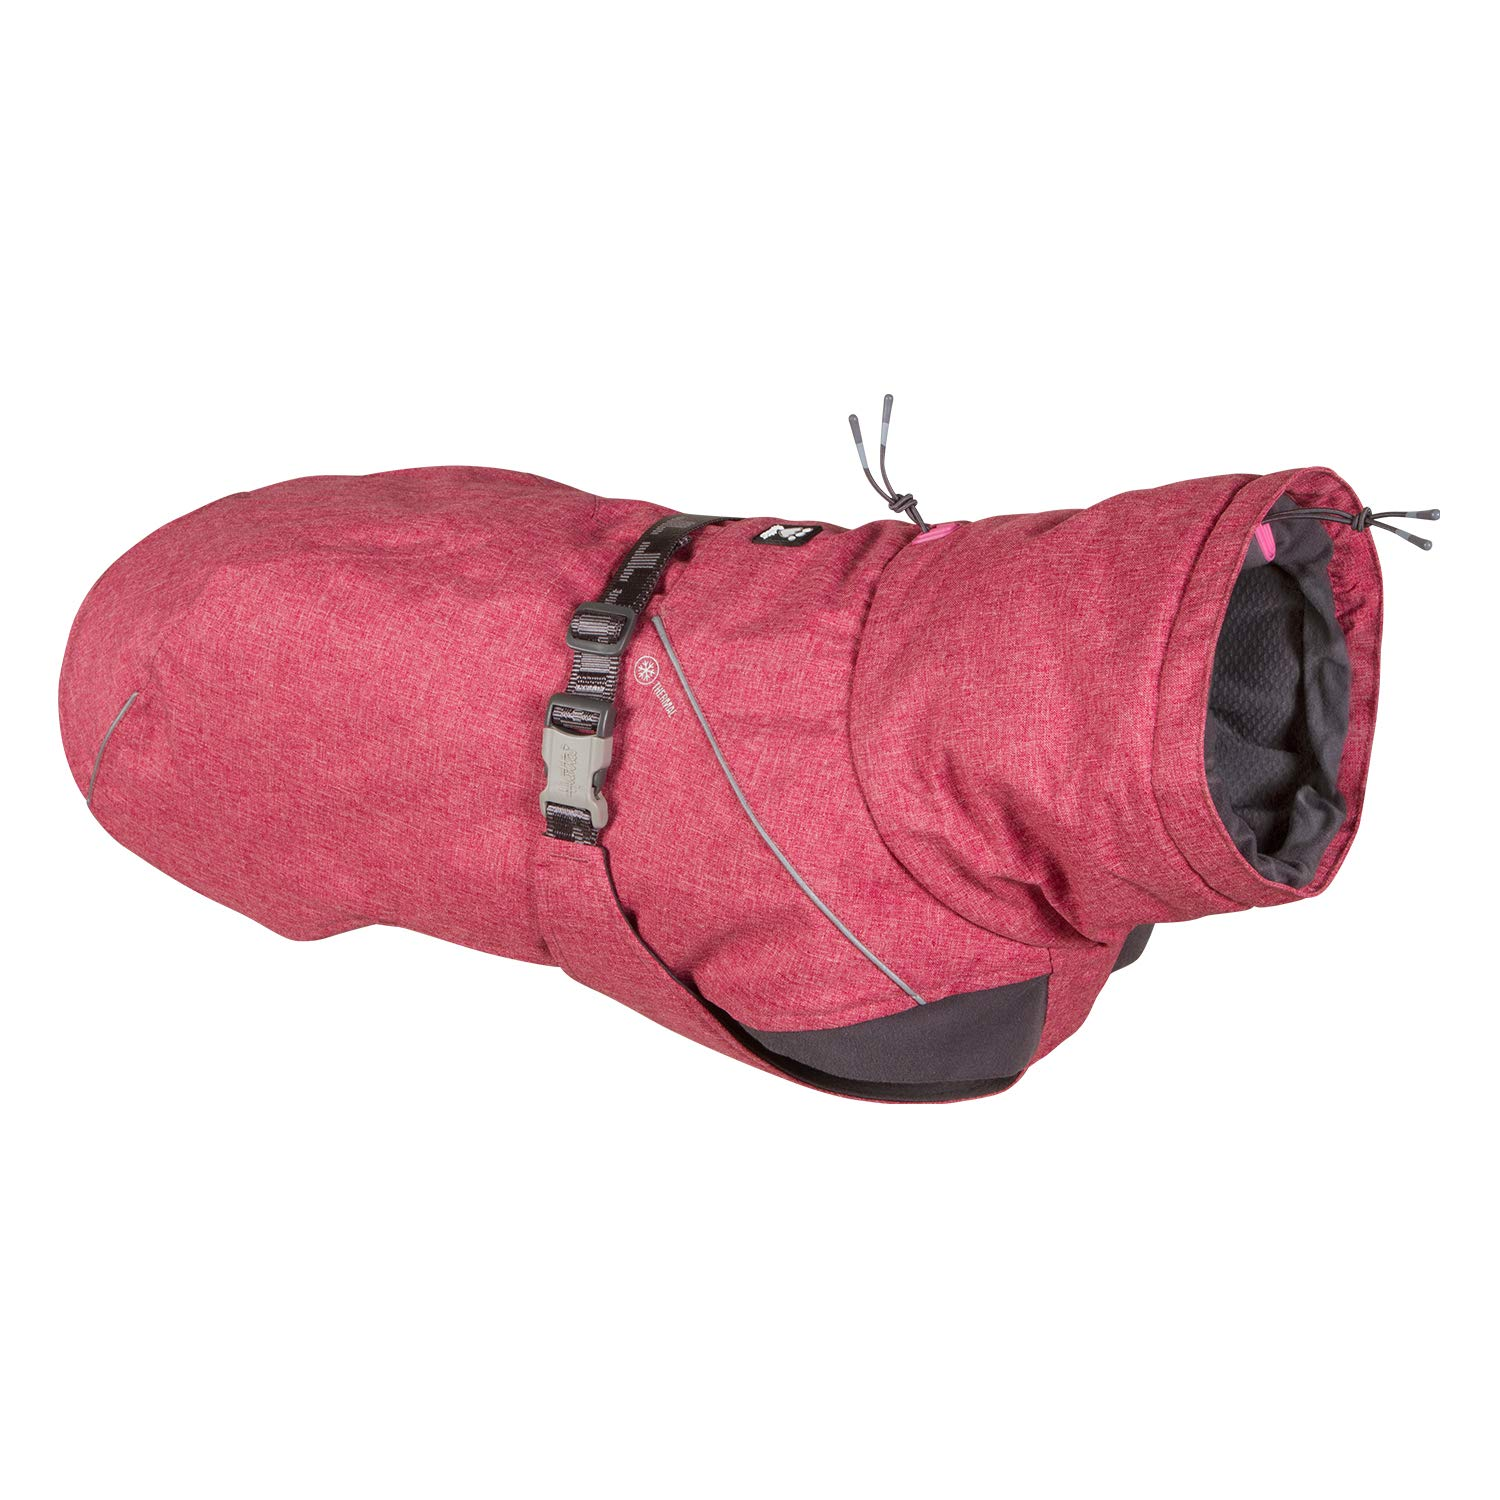 Hurtta - Expedition Parka, Waterproof, Windproof, Insulated Winter Dog Coat